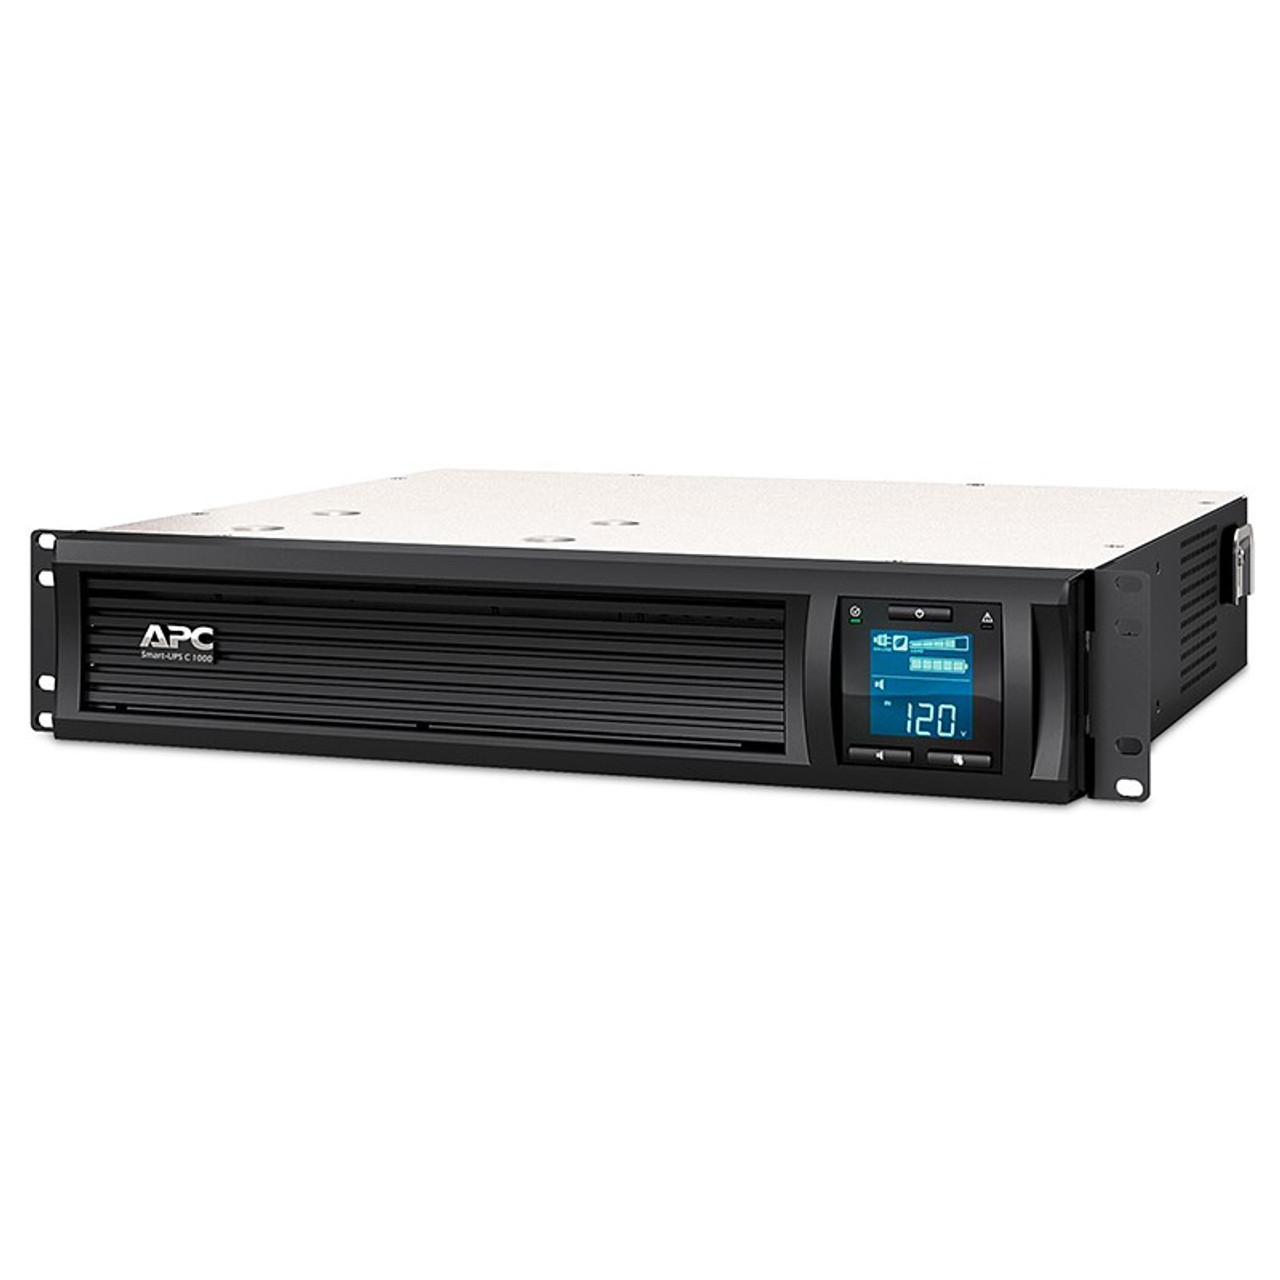 Product image for APC SMC1000I-2UC 100VA LCD RM 2U 230V SmartConnect UPS | CX Computer Superstore